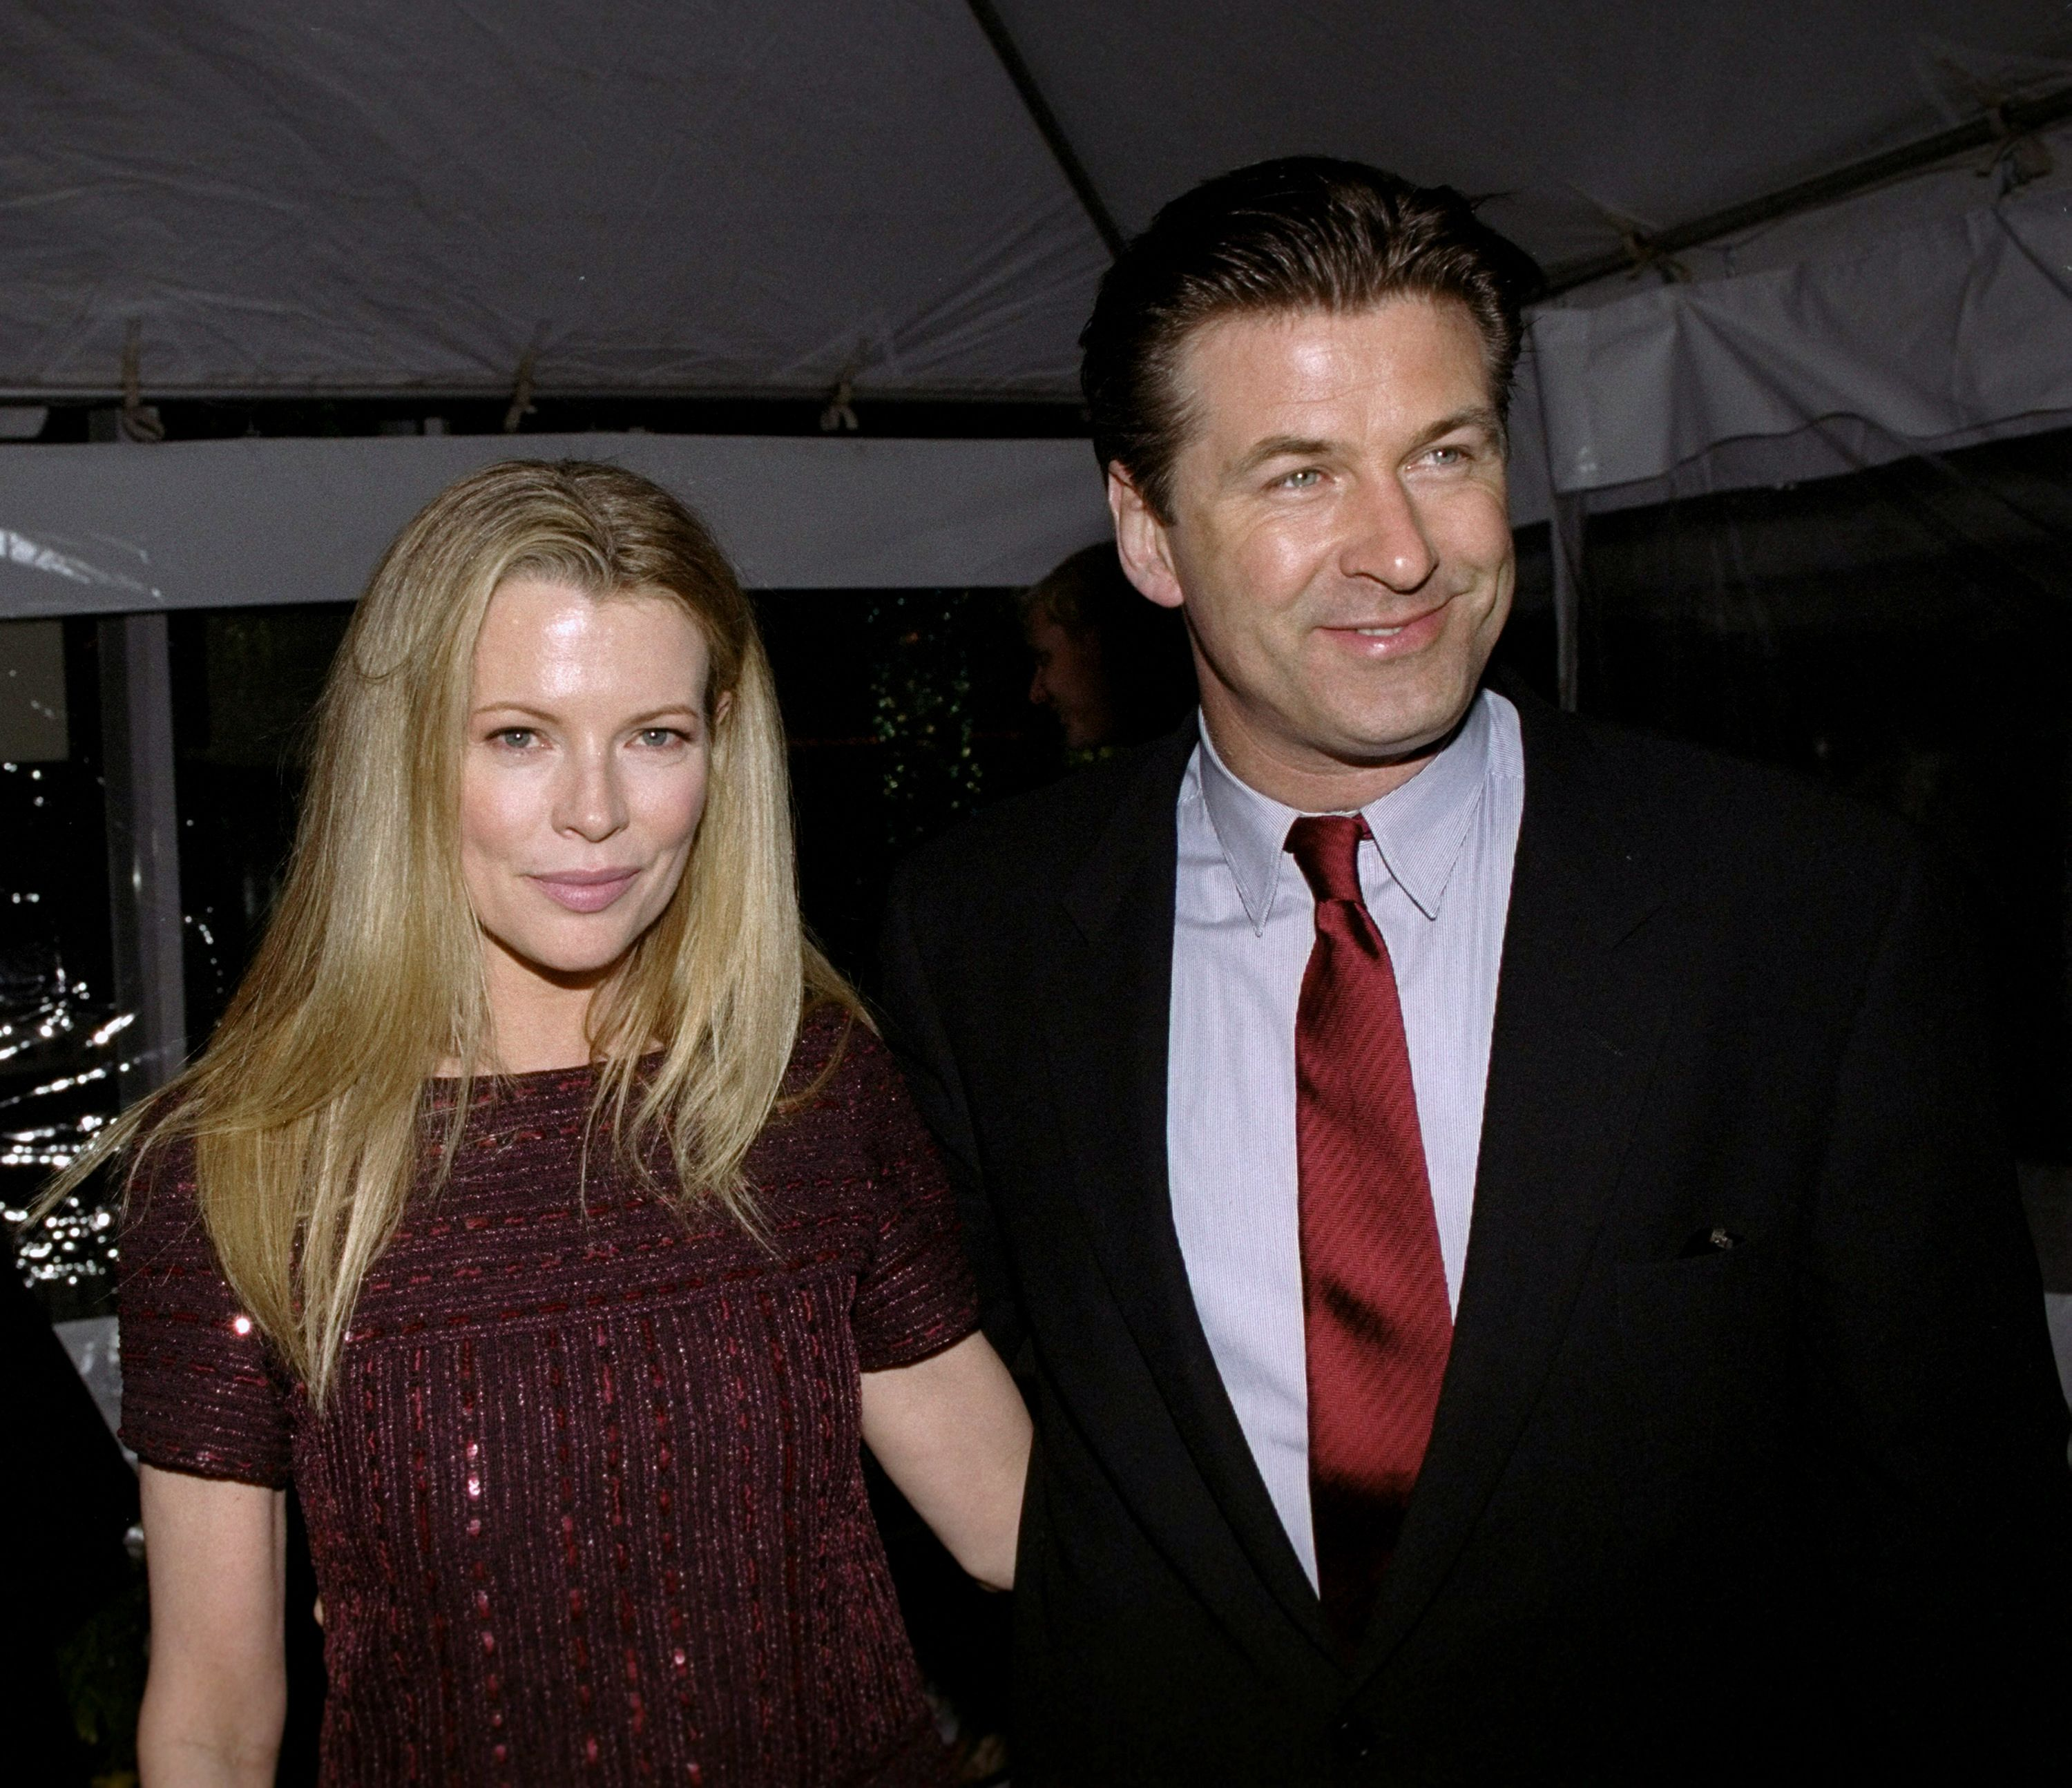 """Alec Baldwin and Kim Basinger at the premiere of """"I Dreamed Of Africa"""" in 2000   Source: Getty Images"""